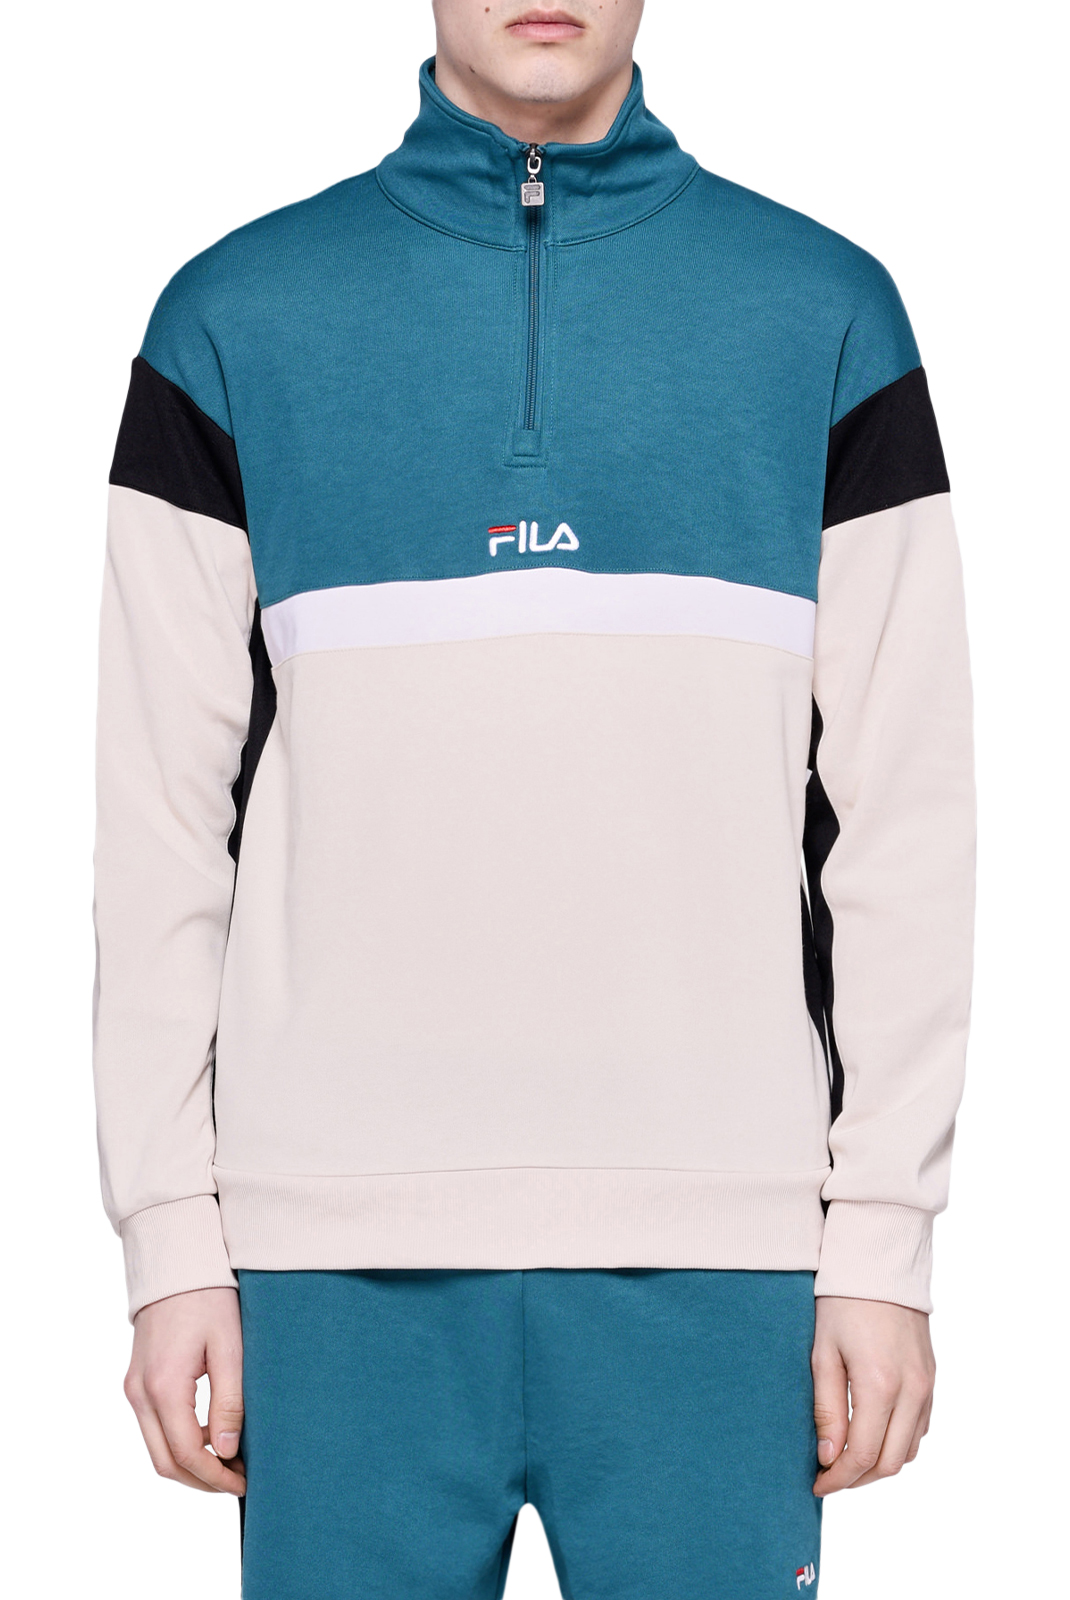 Jumpers & Cardigans  Fila 682356 A081 shaded spruce-black-whitecap gray